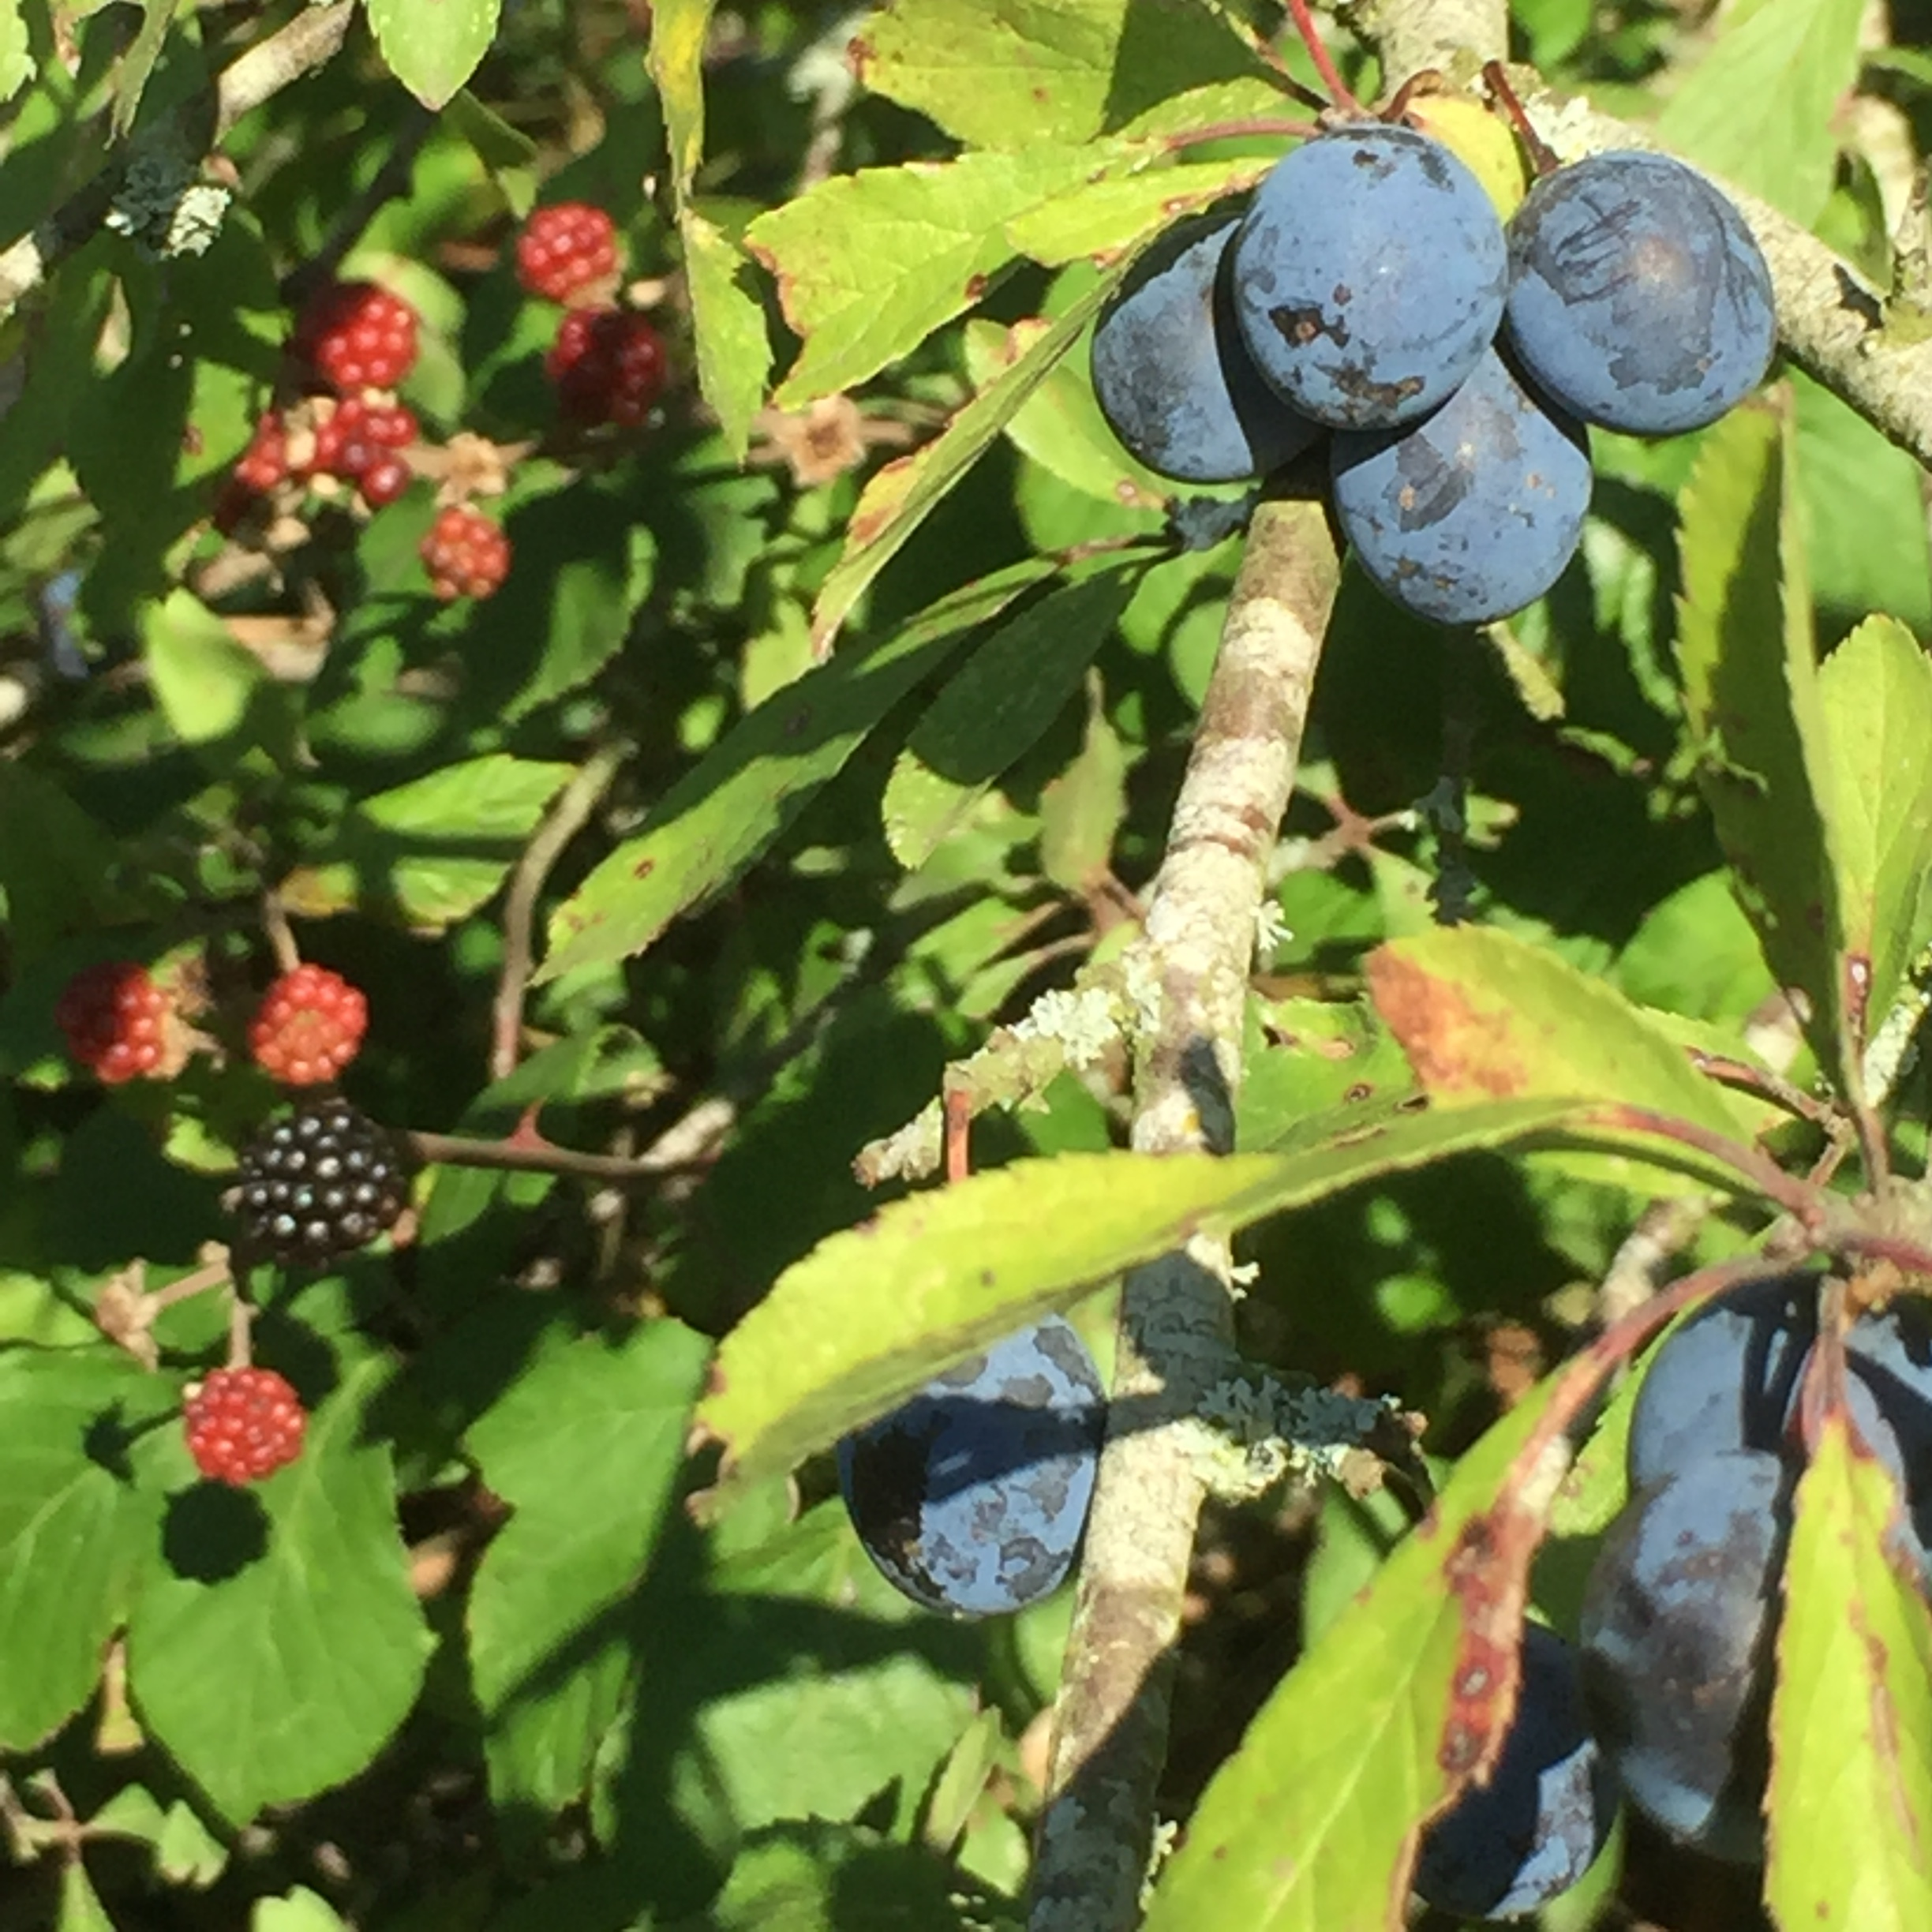 Sloes are looking good! I love the bloom on them.